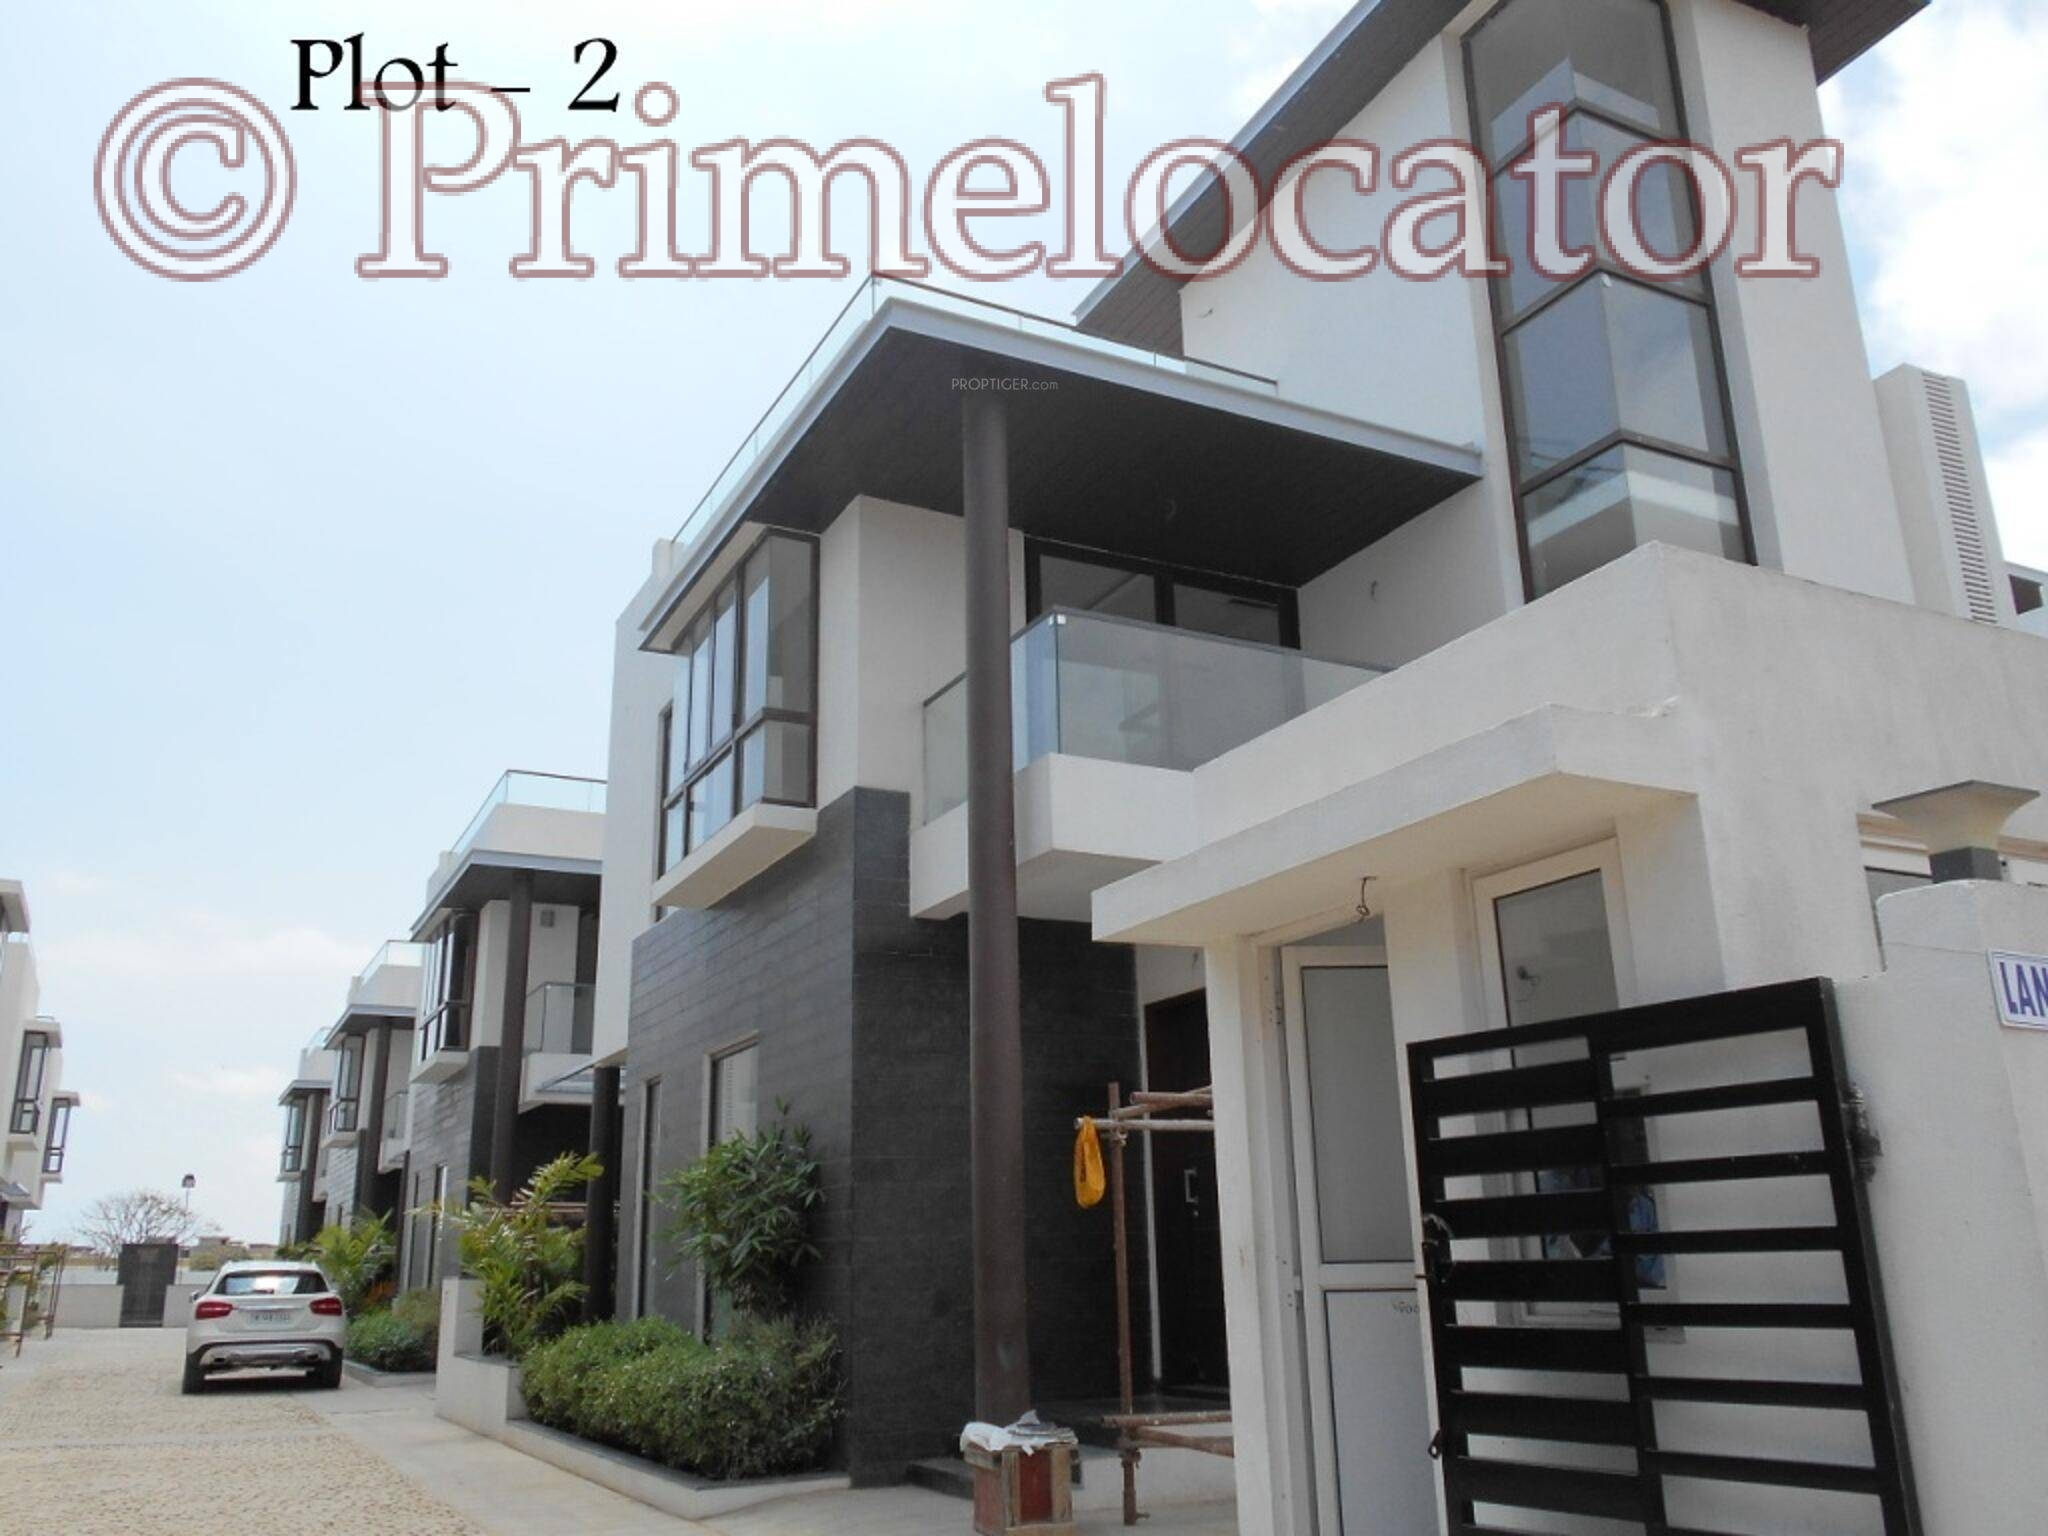 Commercial property chennai residential property chennai commercial properties residential for 3 bedroom apartments in chennai